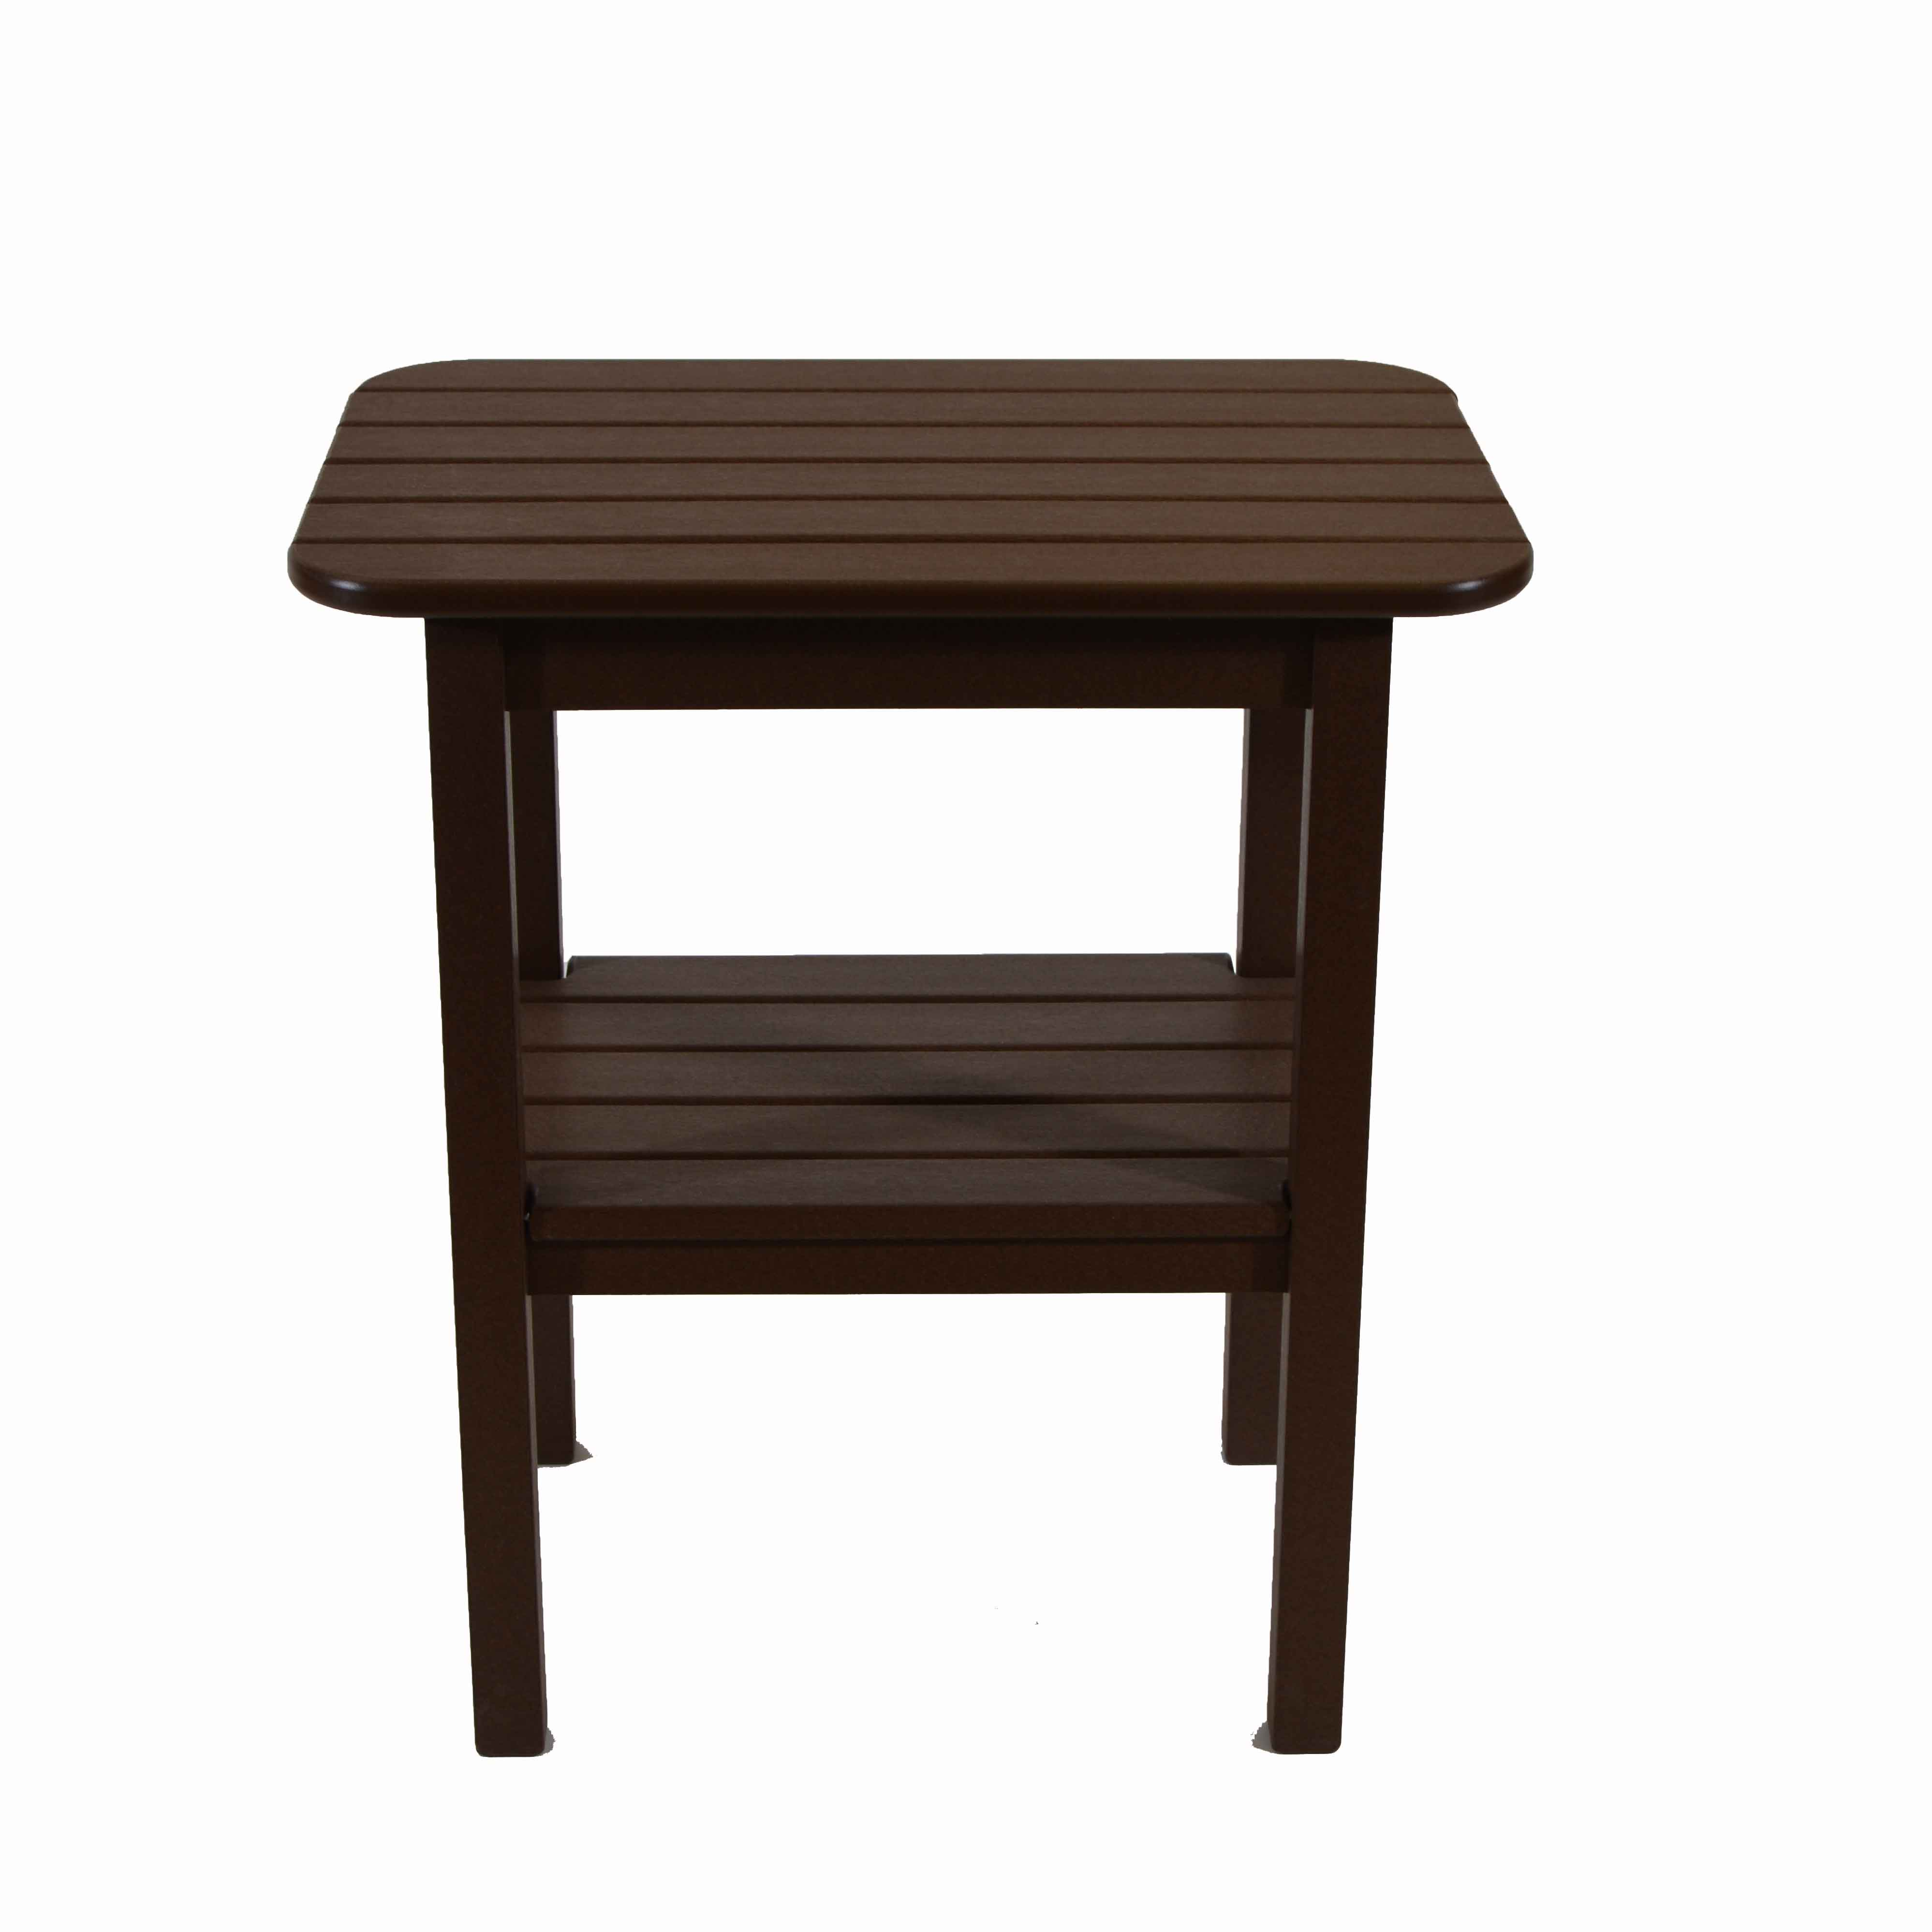 seaside casual westerly balcony end table chestnut outdoor accent ikea kids room storage inch square tablecloth keter beer cooler deep sofa wrought iron wine rack west elm